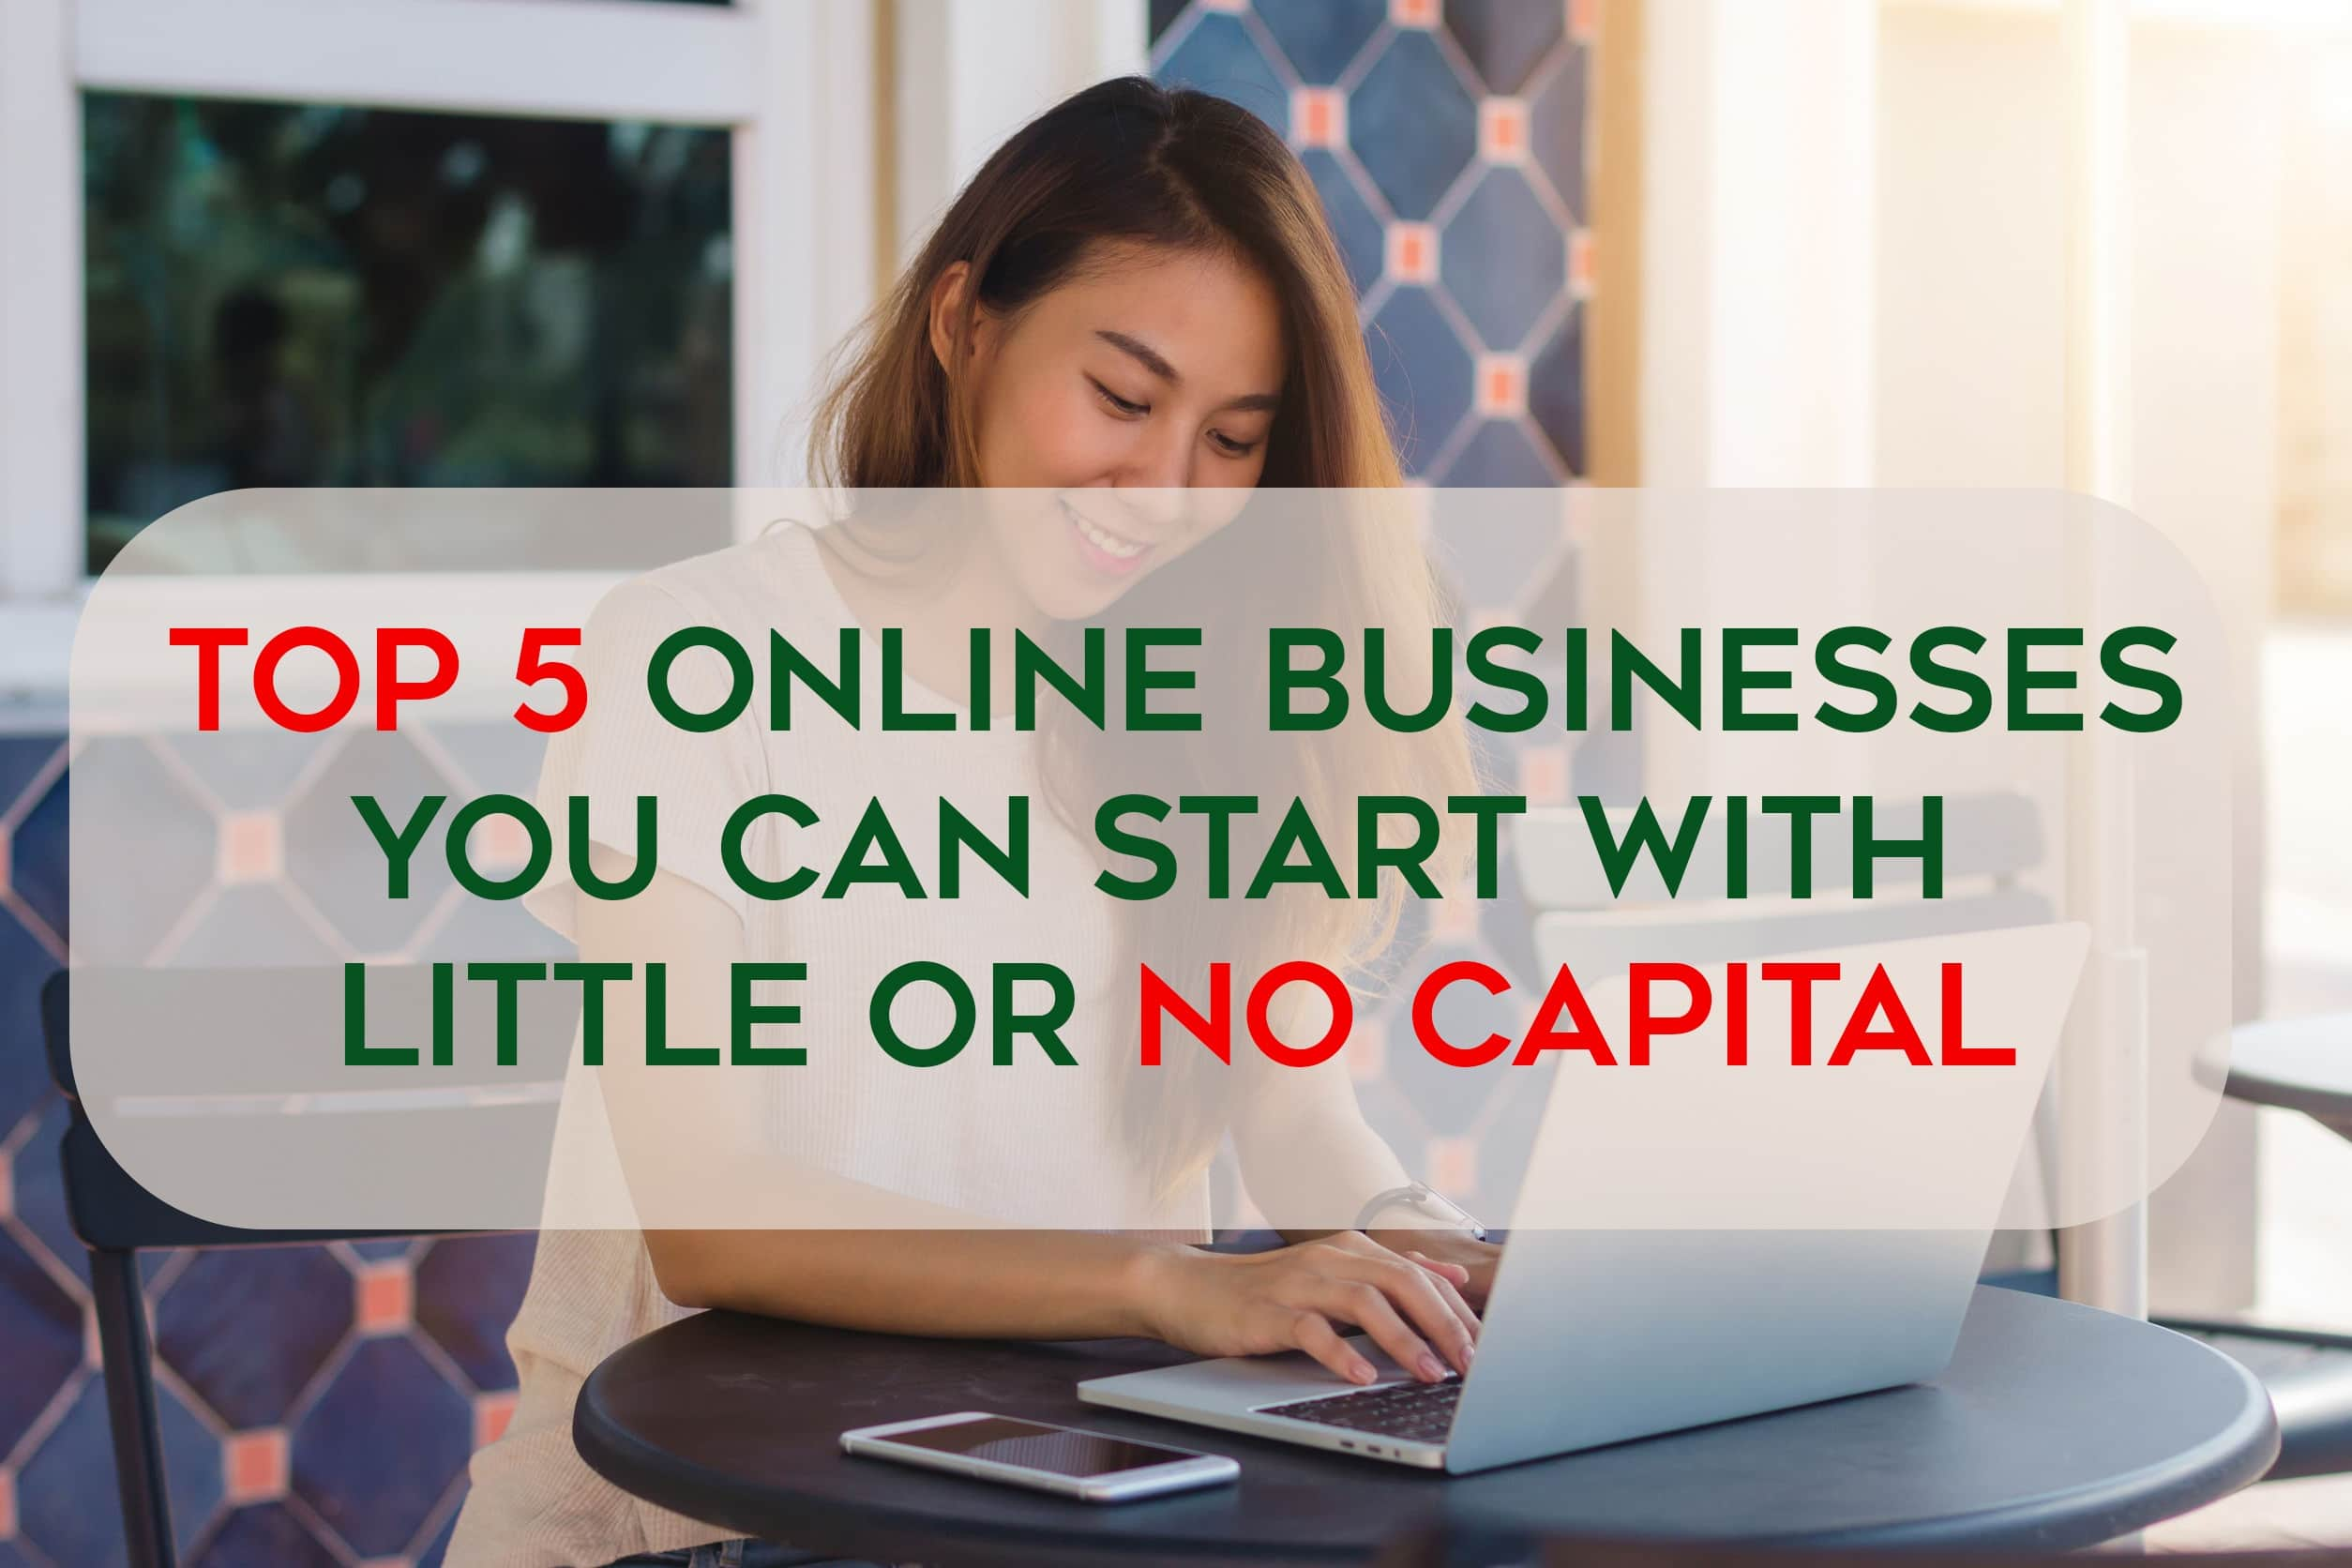 top 5 online businesses you can start with little or no capital